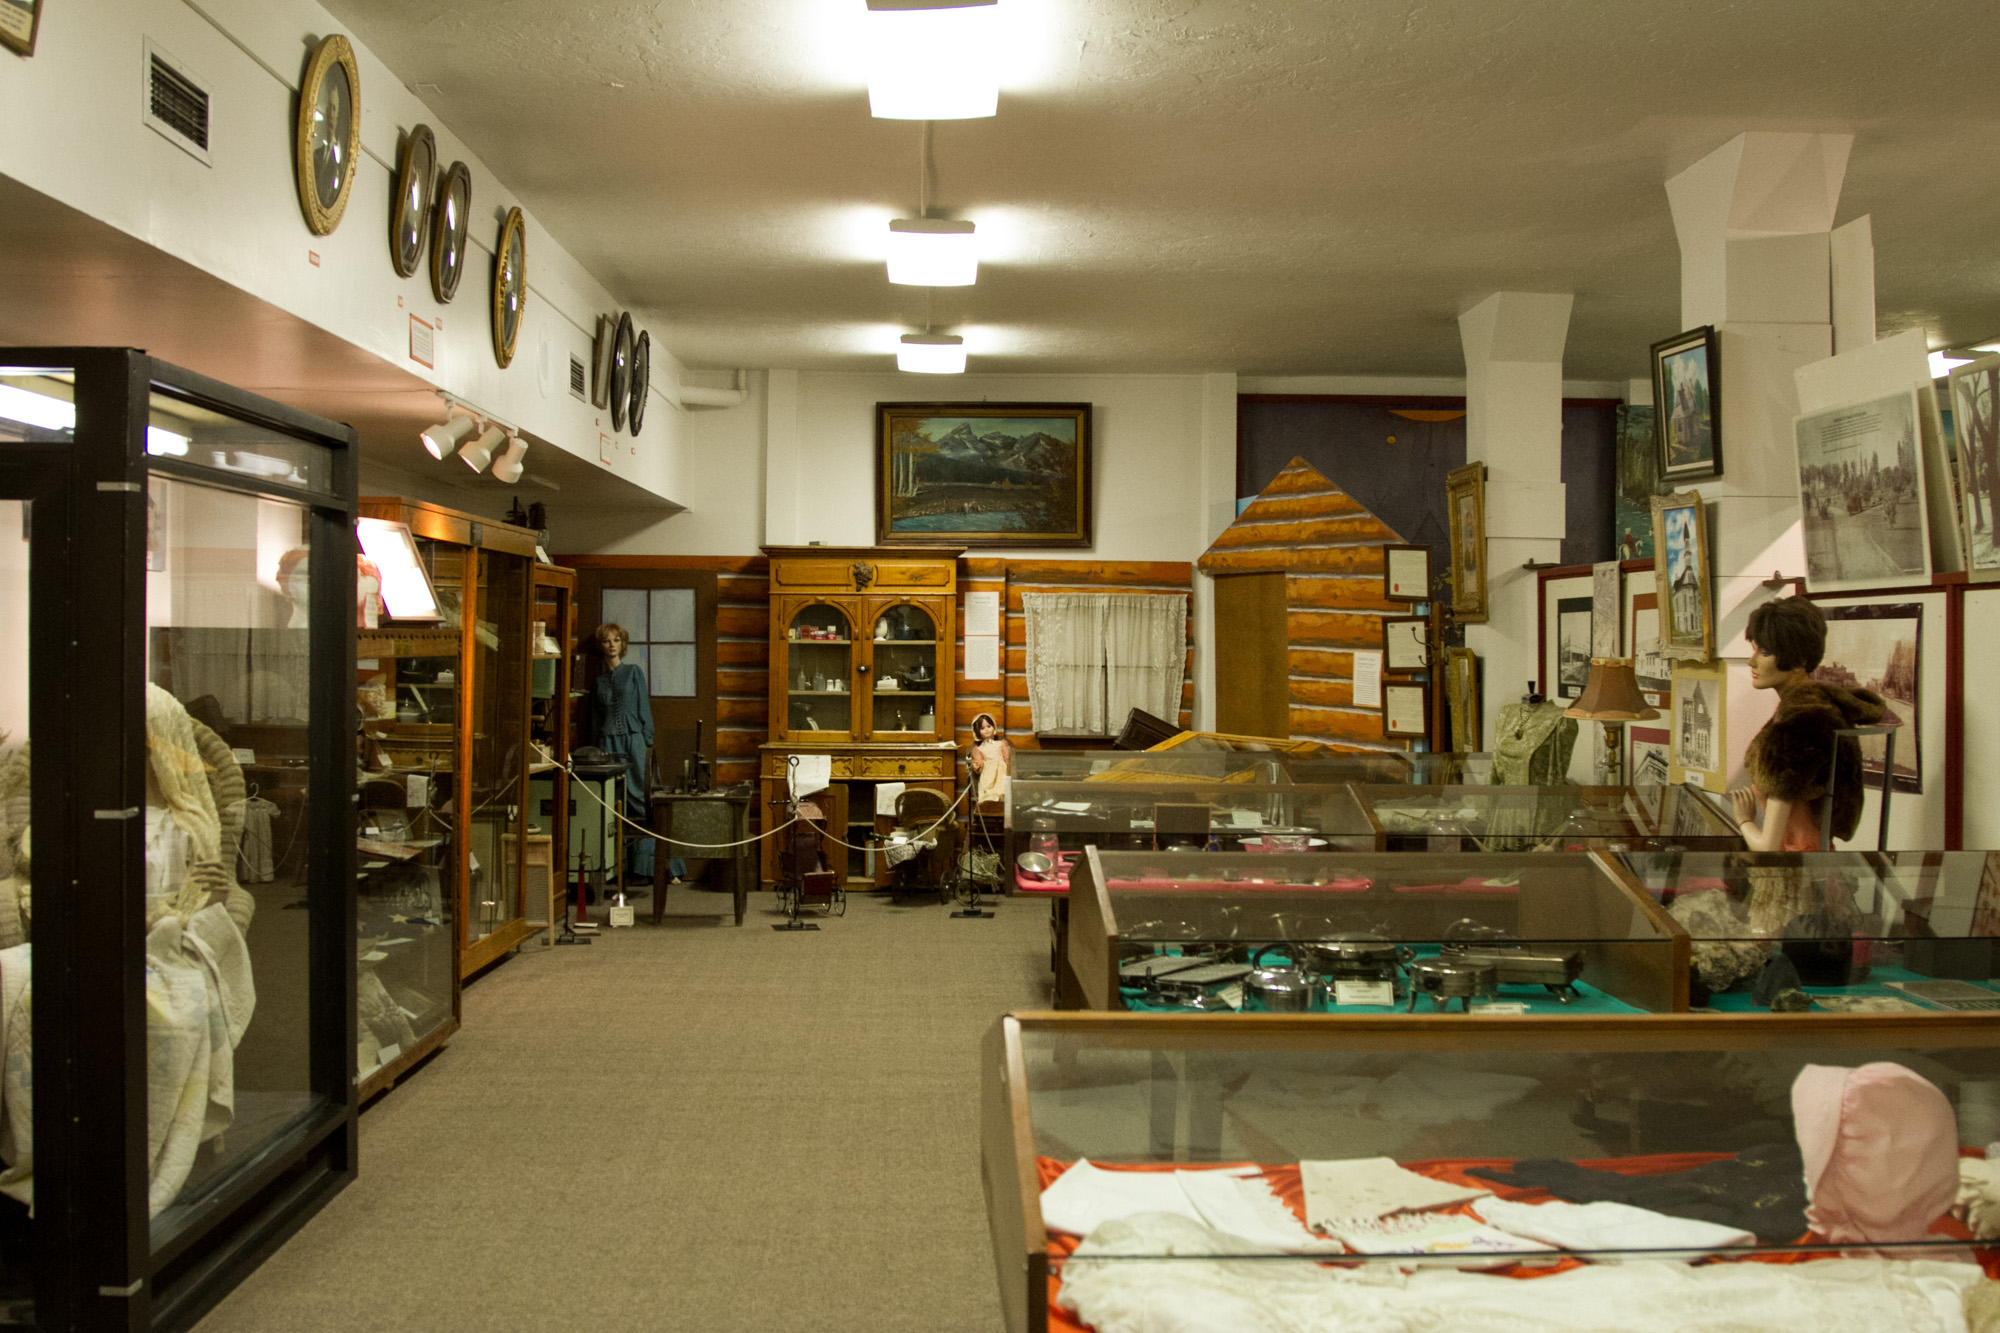 What to do in Rexburg? Visit the Museum of Rexburg.